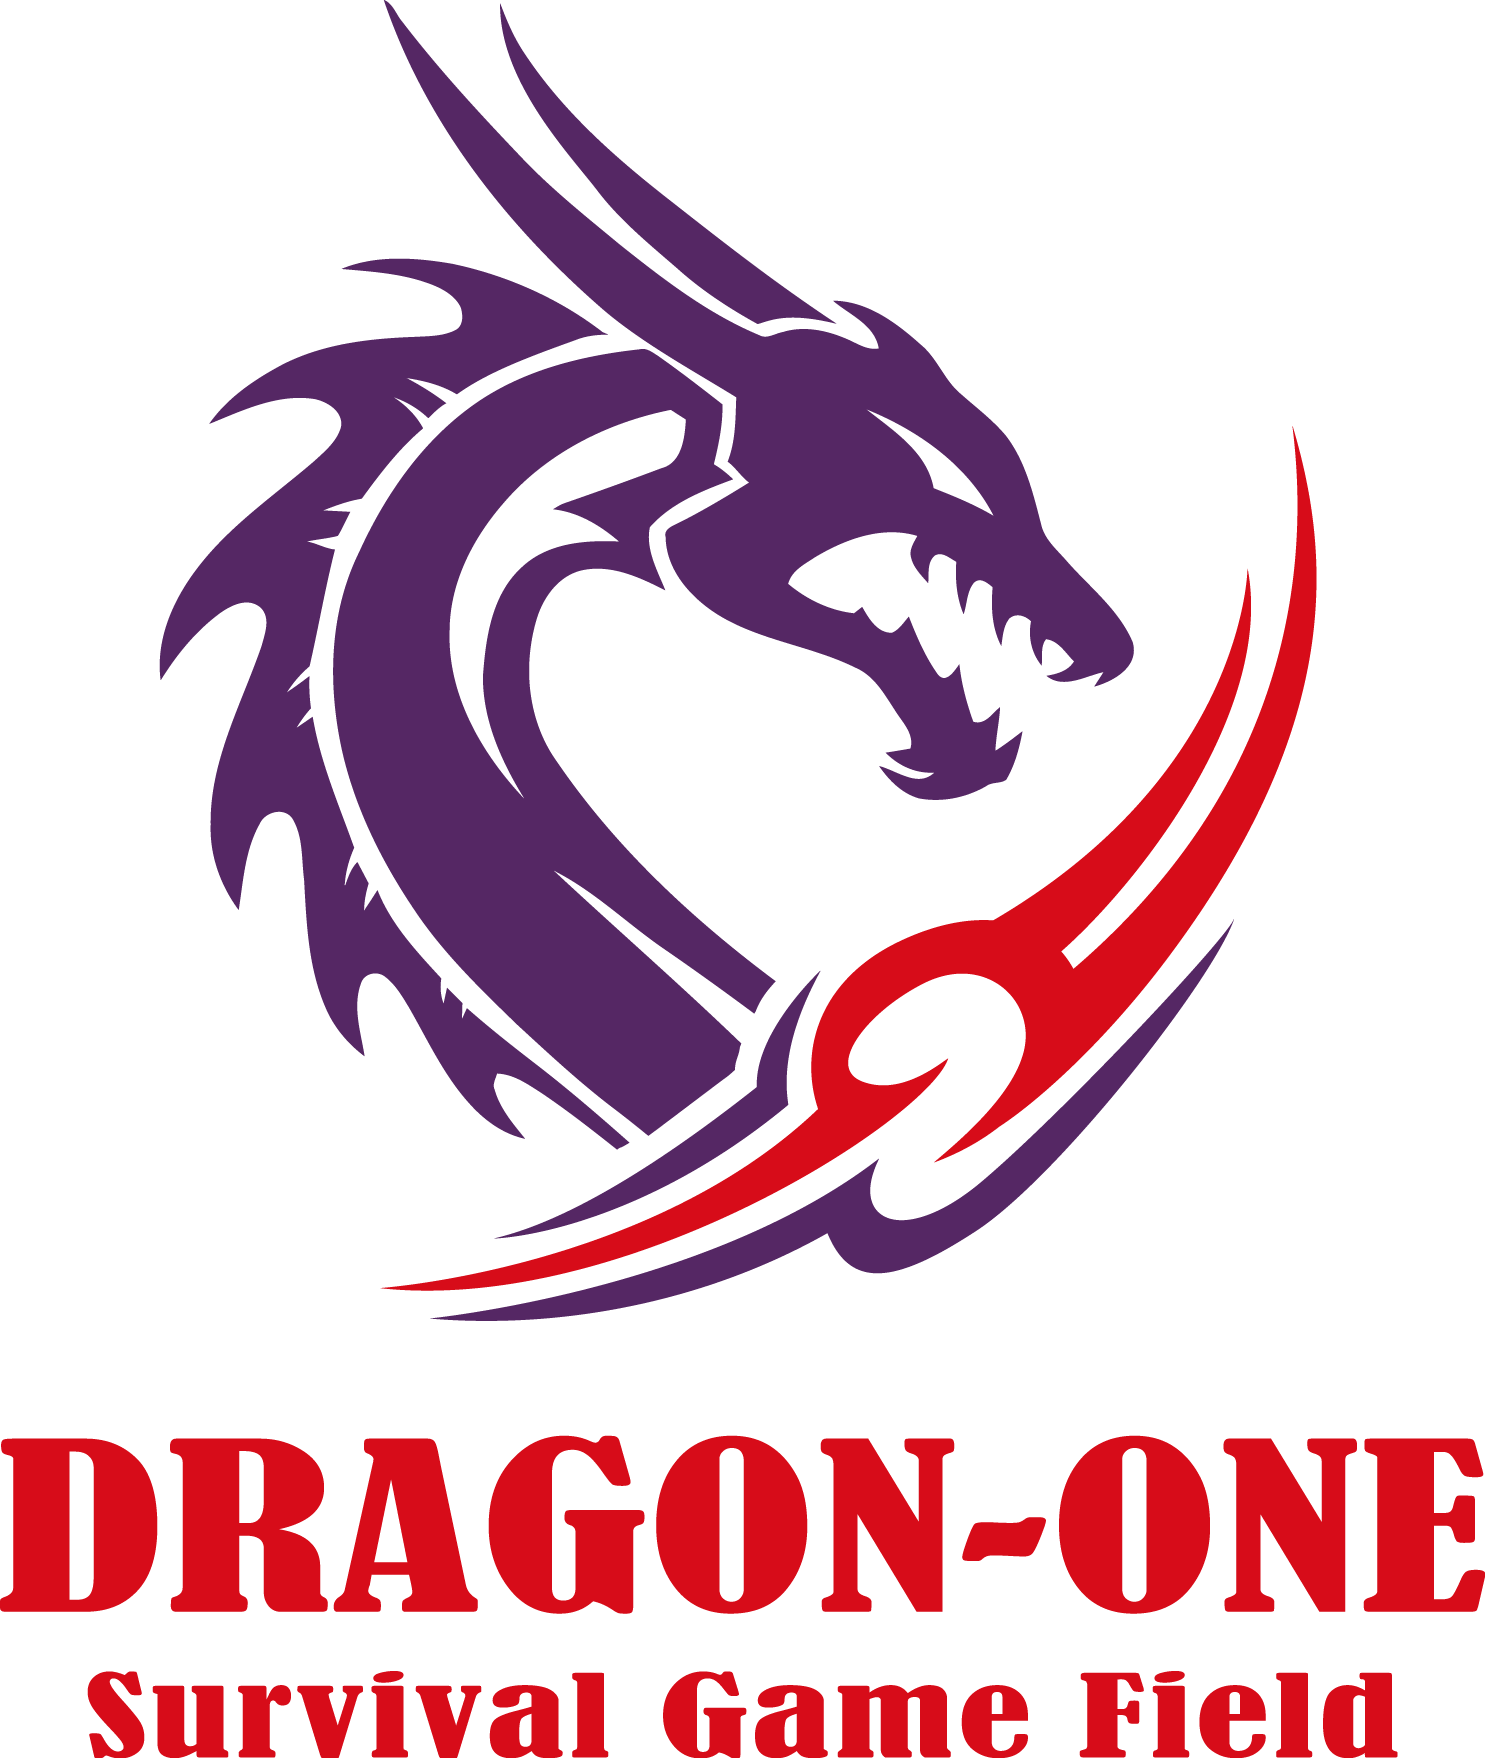 DRAGON-ONE